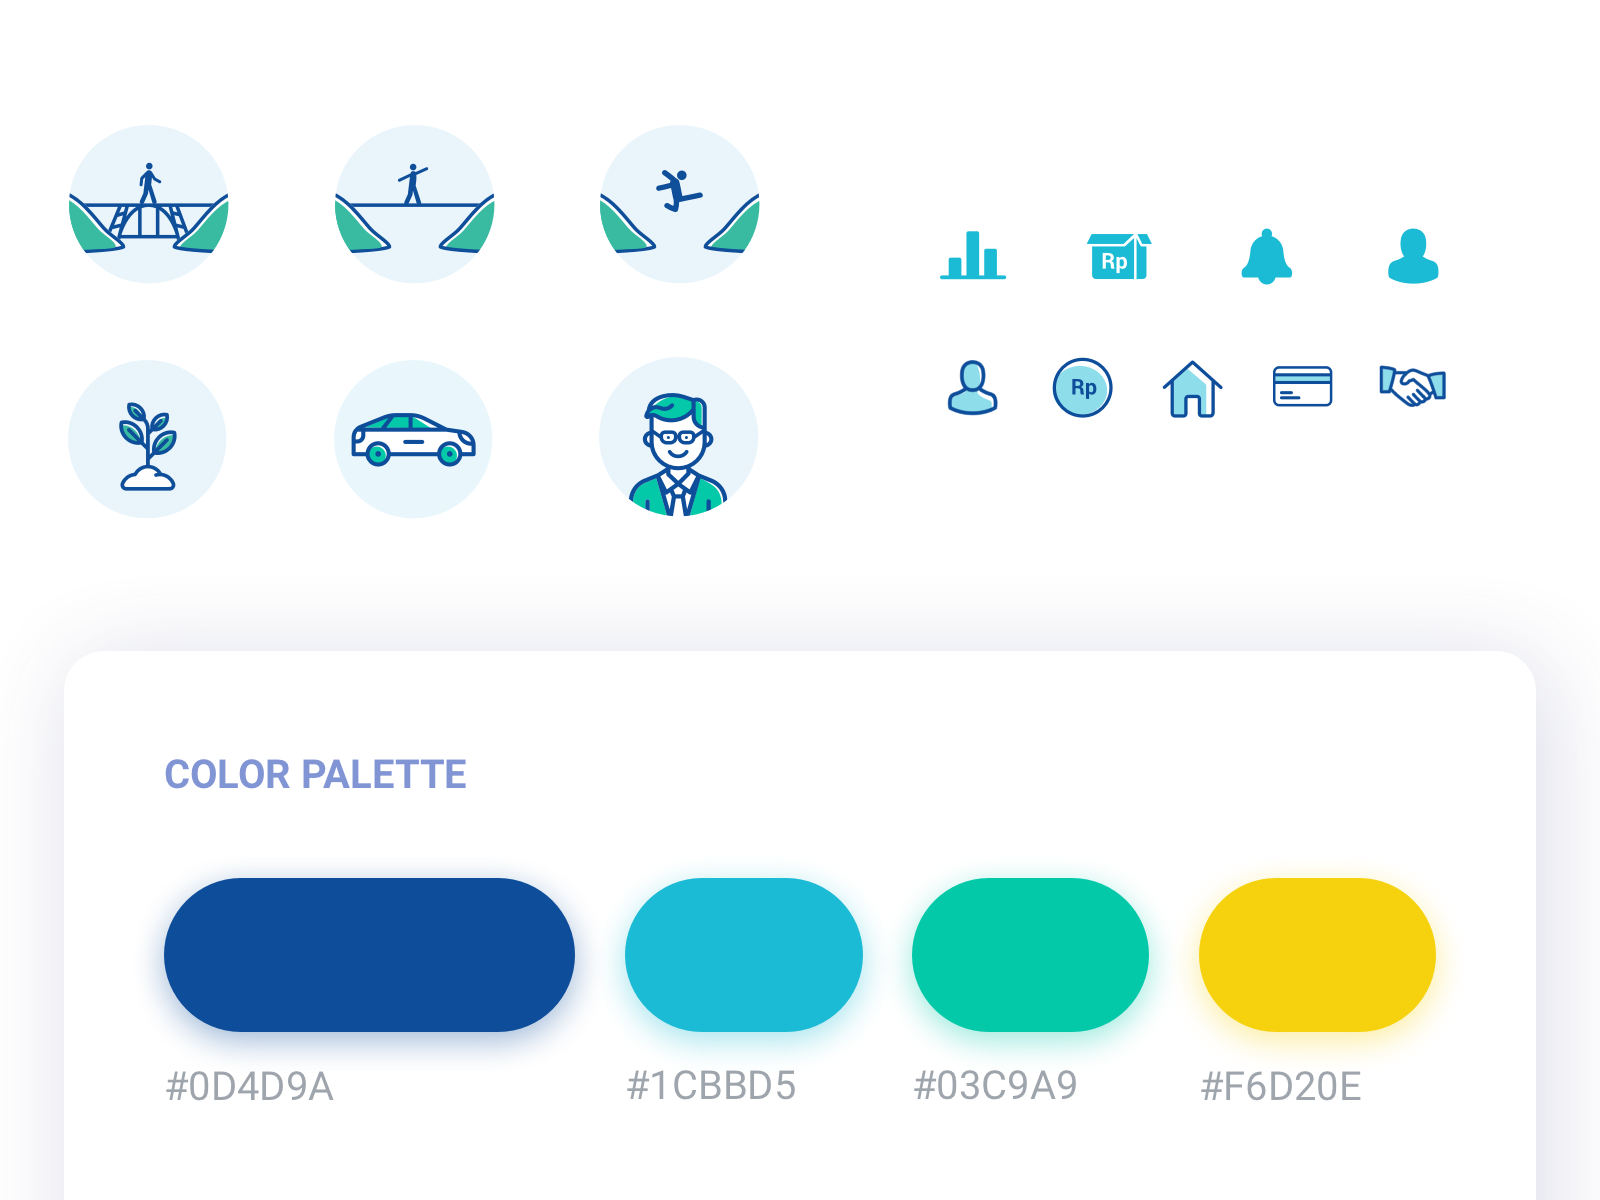 Tanamduit_Colors&Icons.png